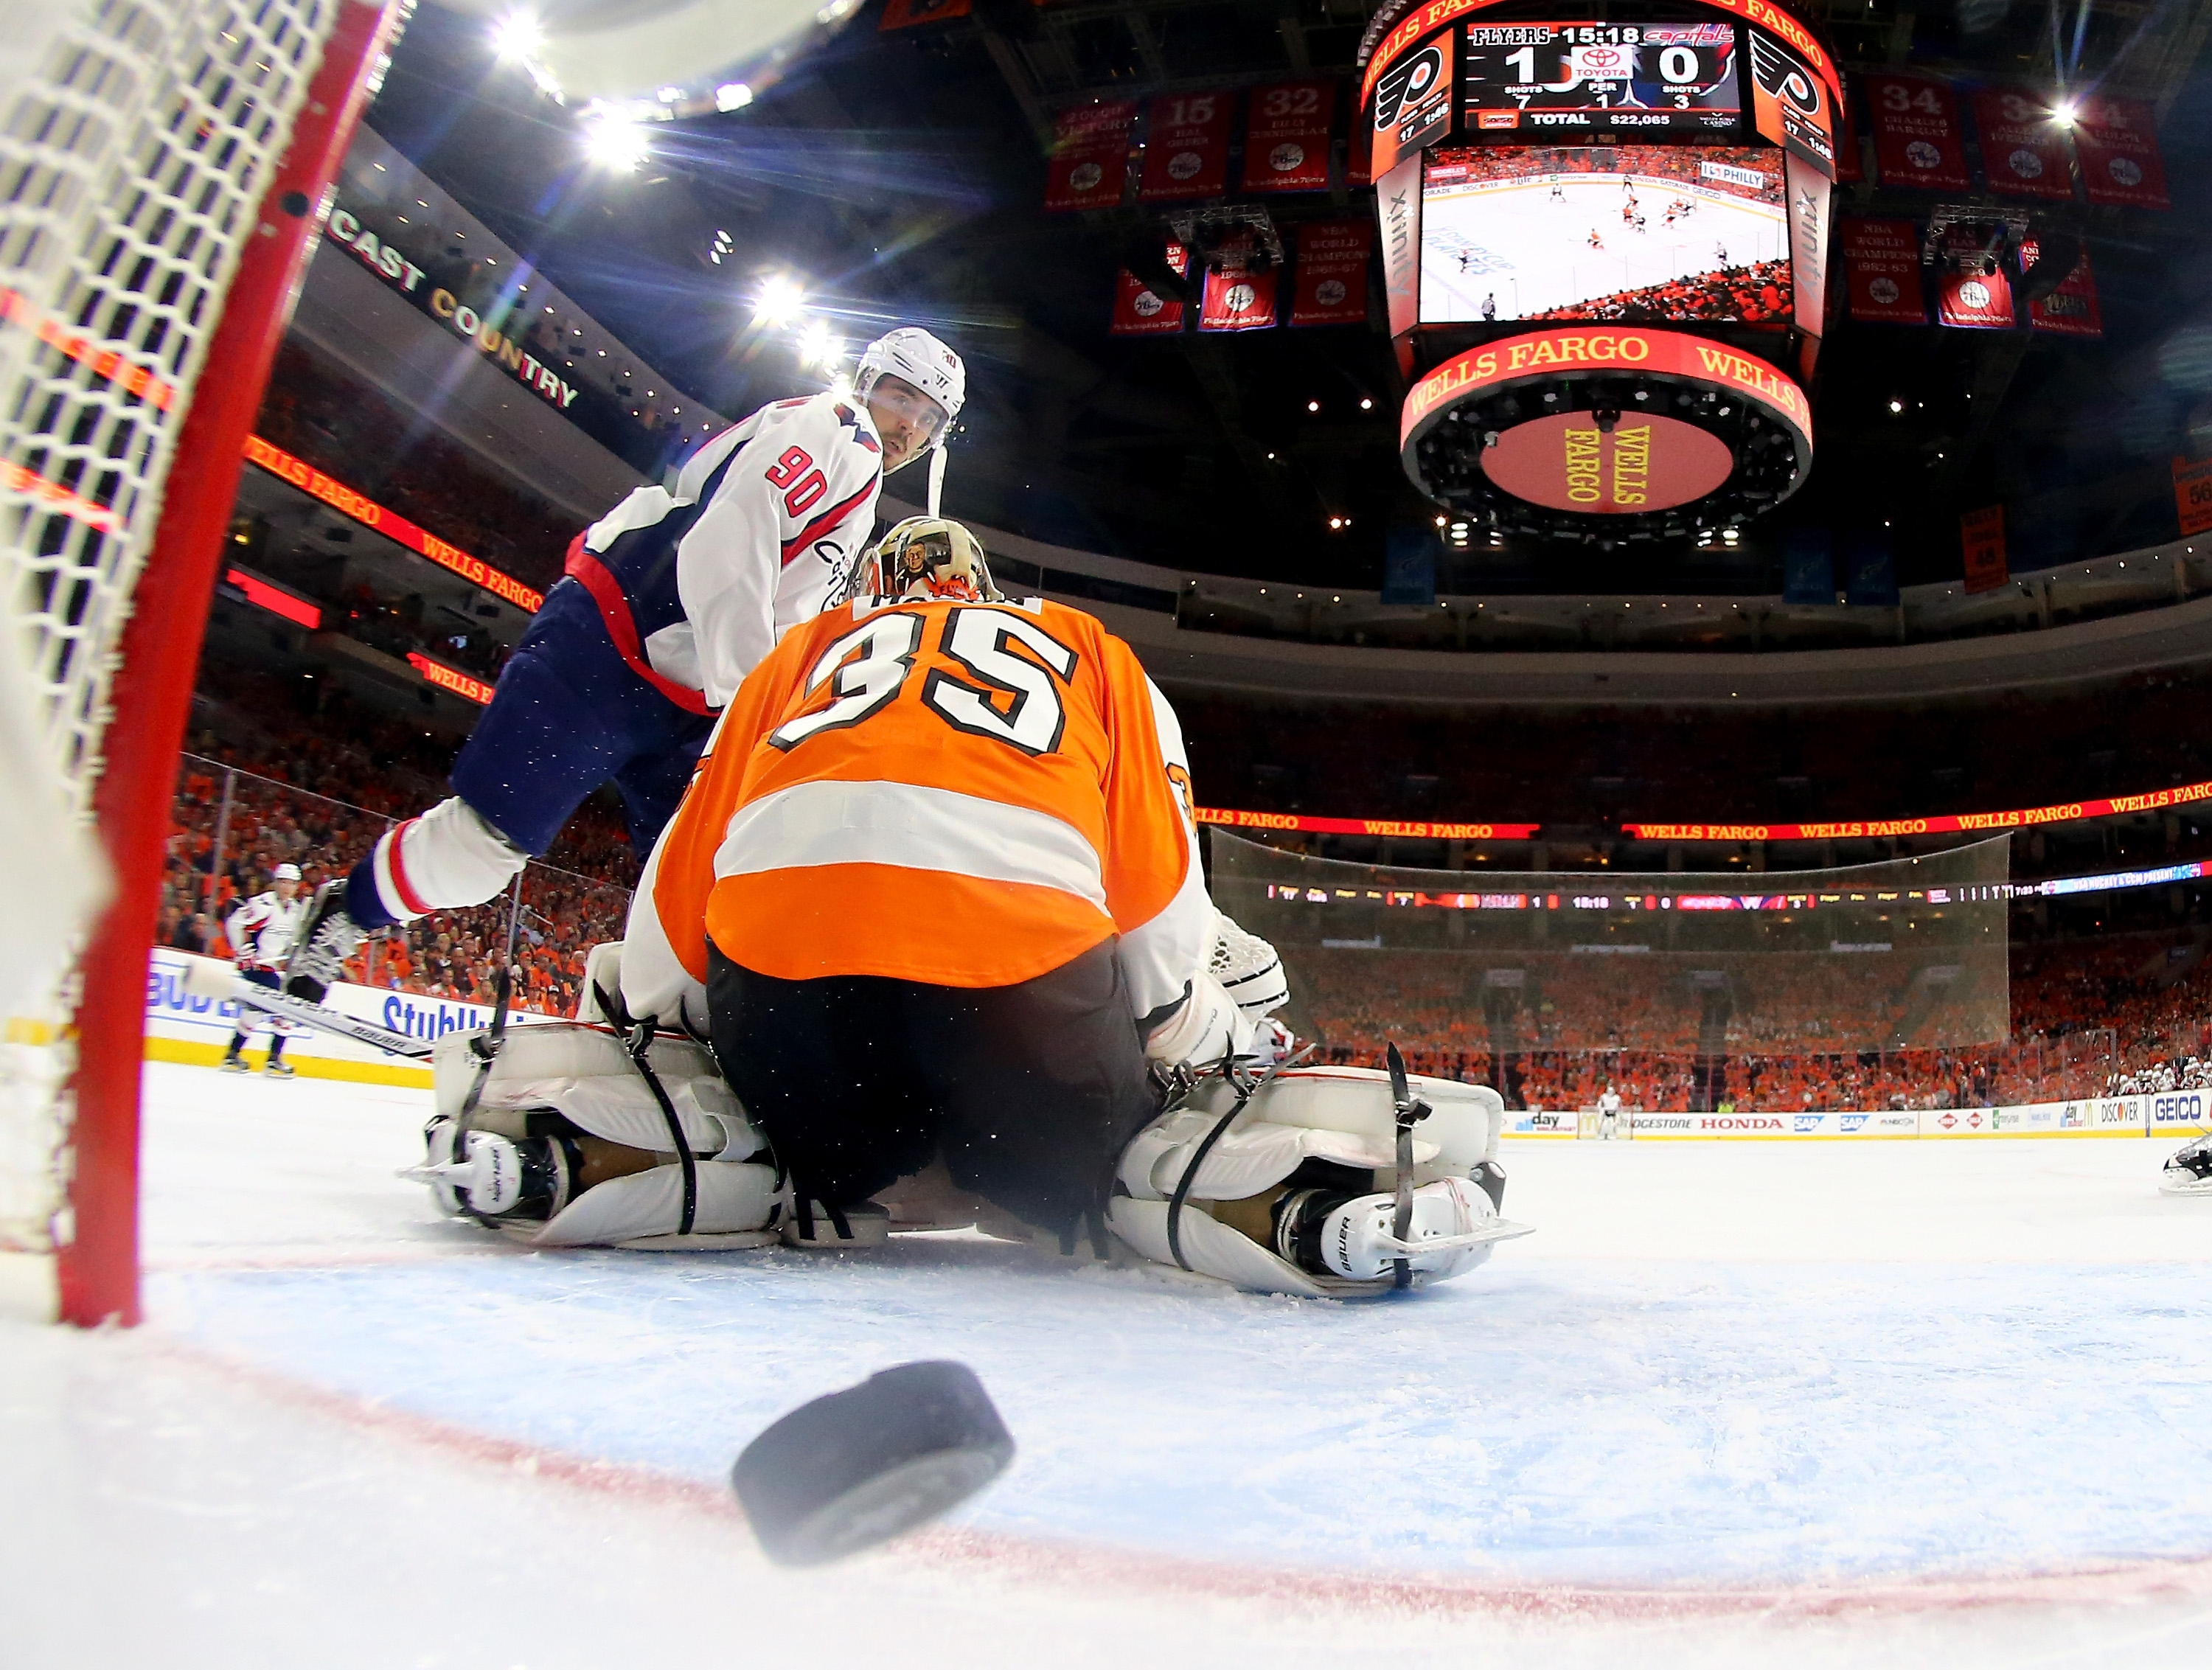 Mark Gaughan would be more than happy to see more of this from the Capitals against the Flyers in Game Four.